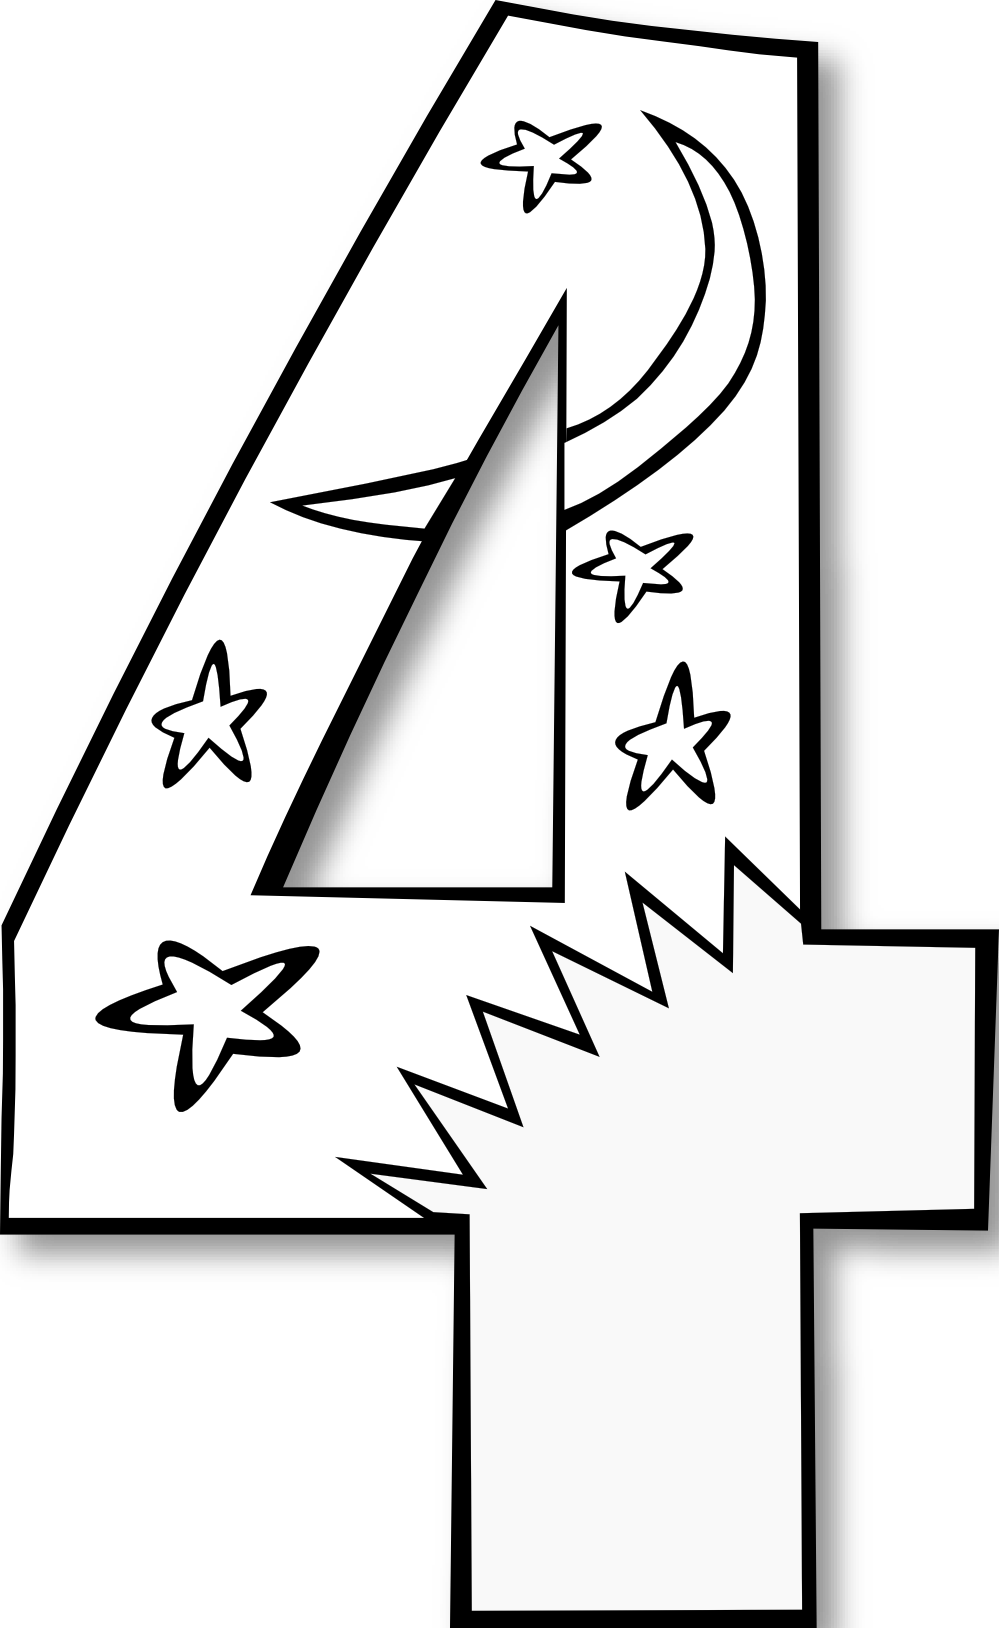 Black number 1 clipart clip free library 1 clipart black and white - ClipartFox clip free library